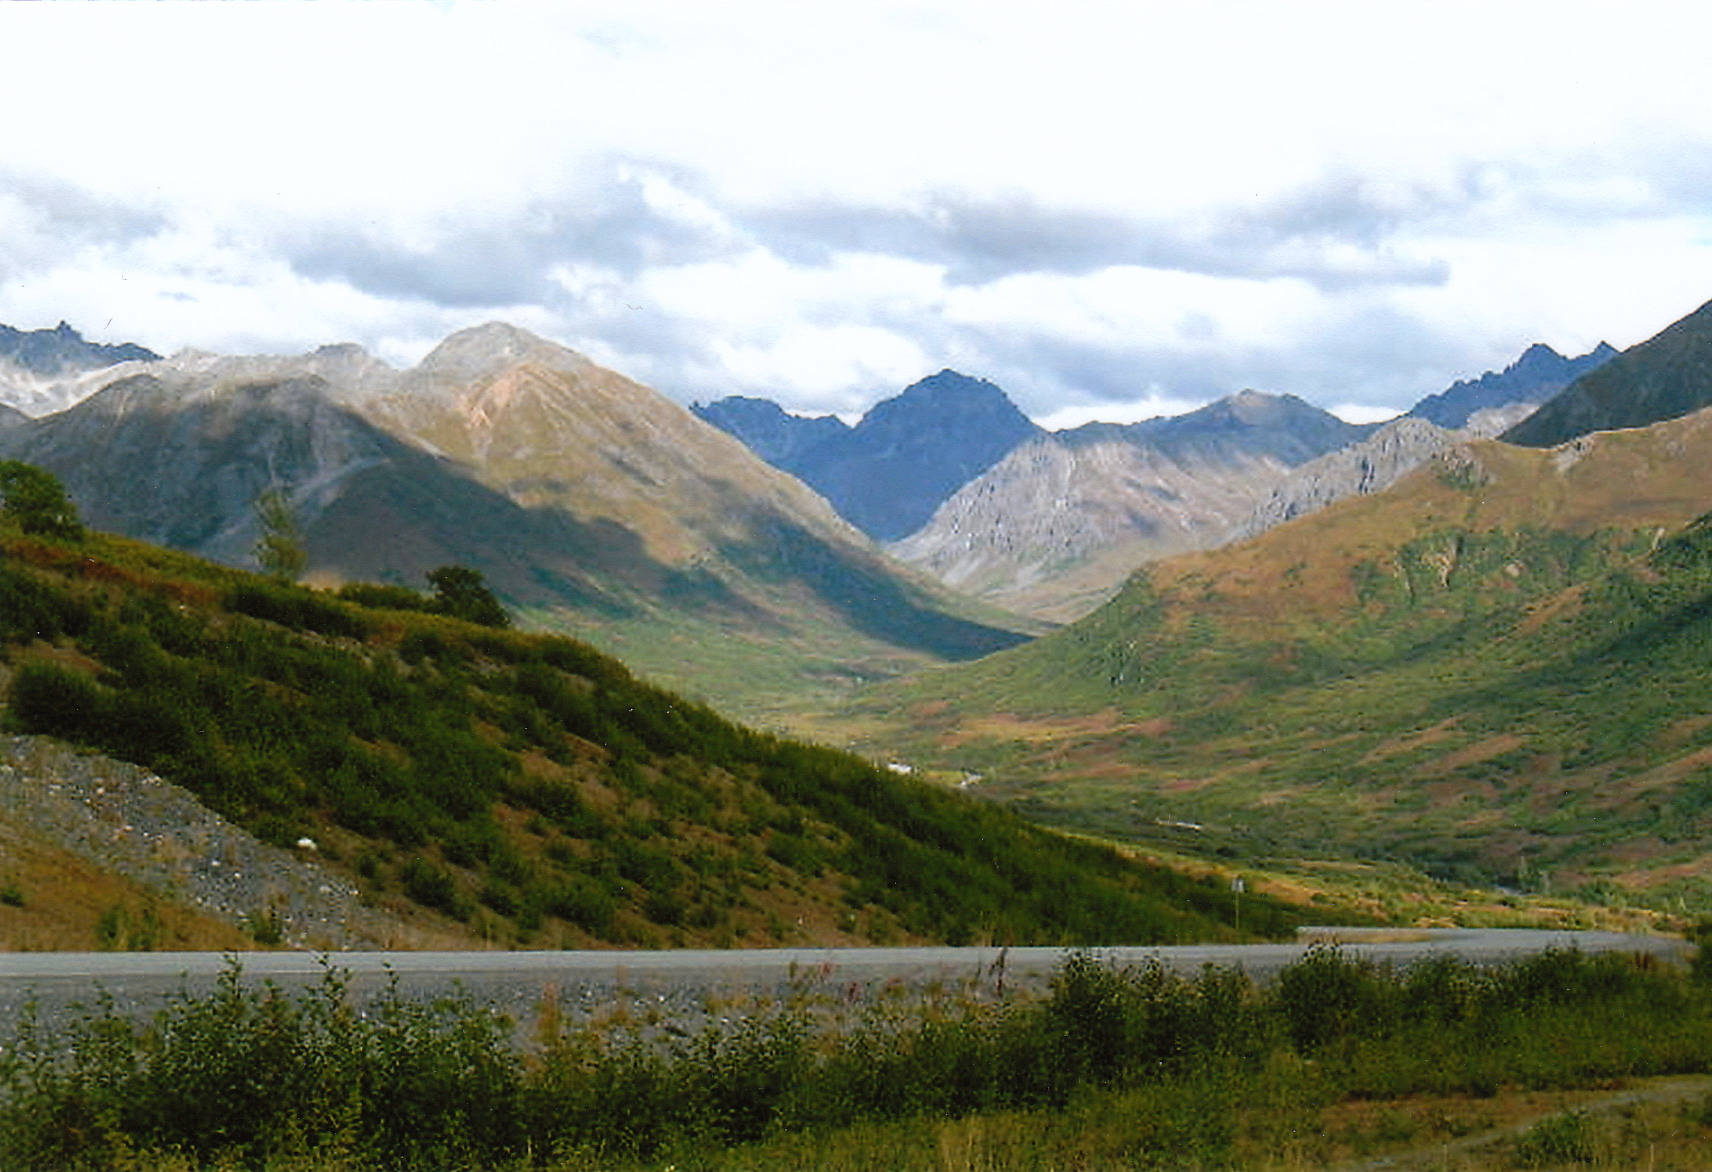 The mountains of Hatcher Pass.